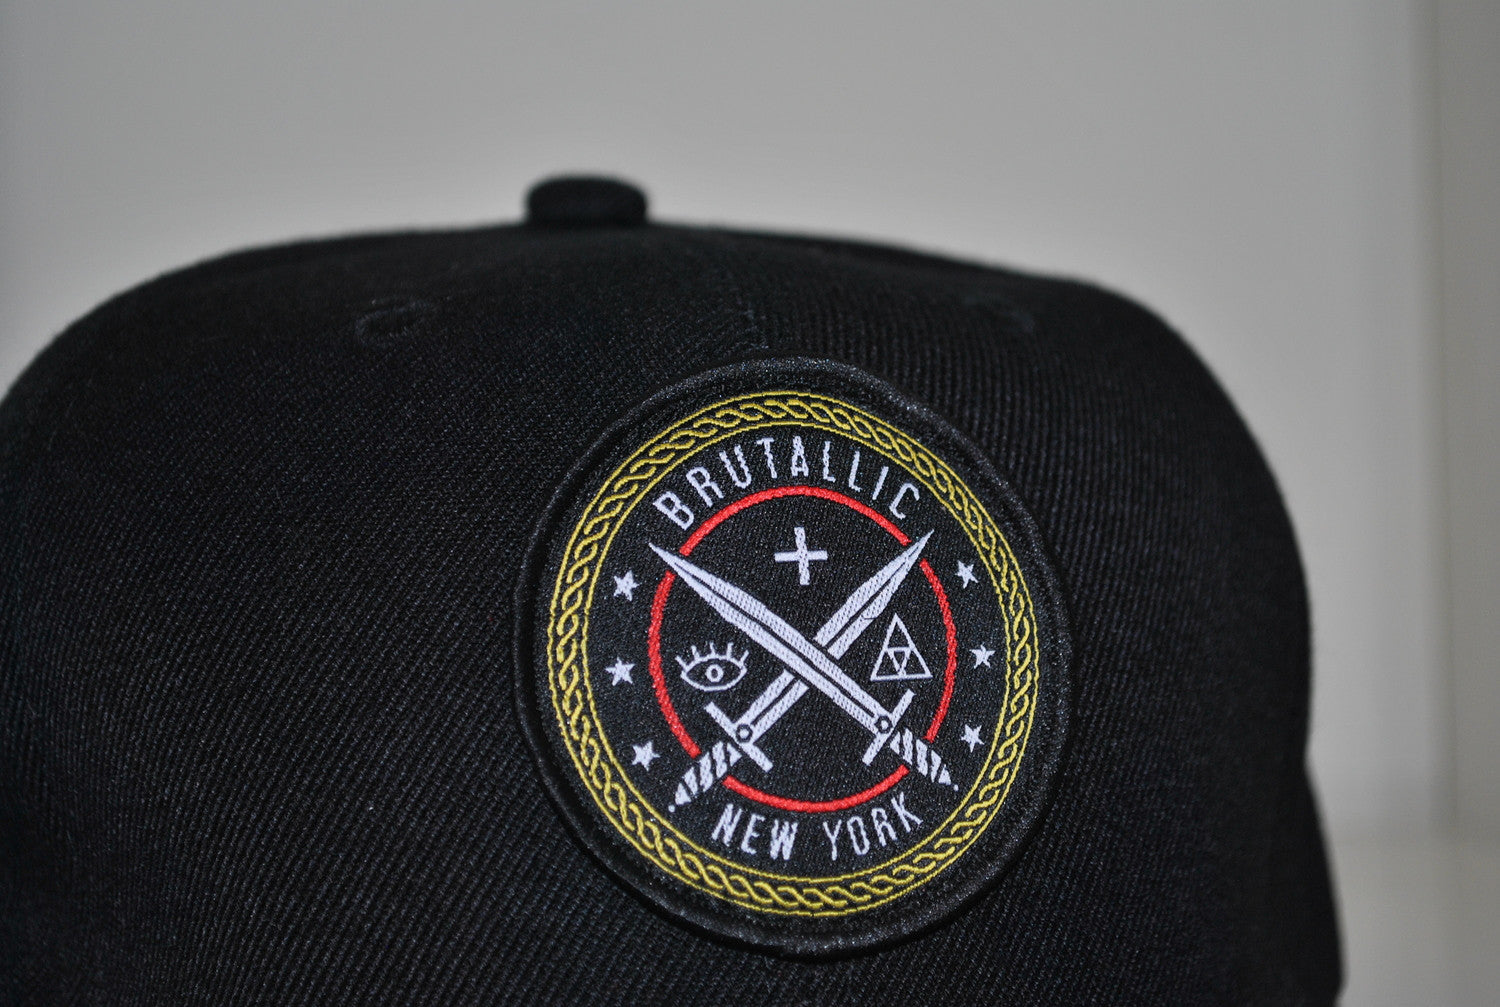 Cosmic Battle Snapback (Black) - Brutallic - 3